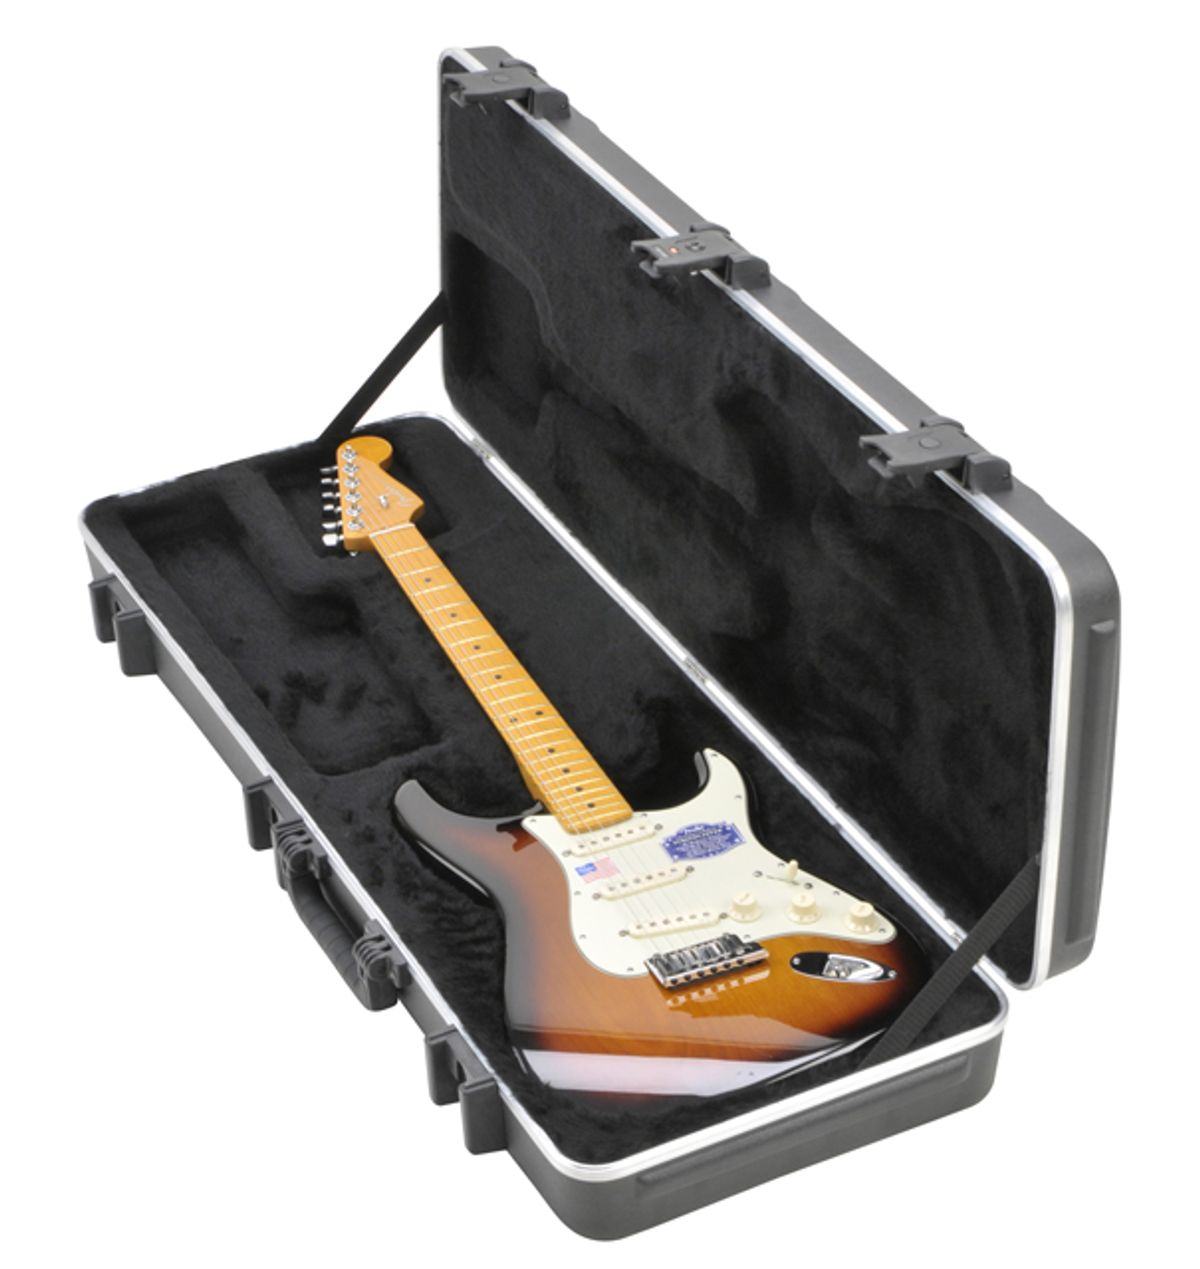 SKB Announces New Pro Guitar and Bass Cases